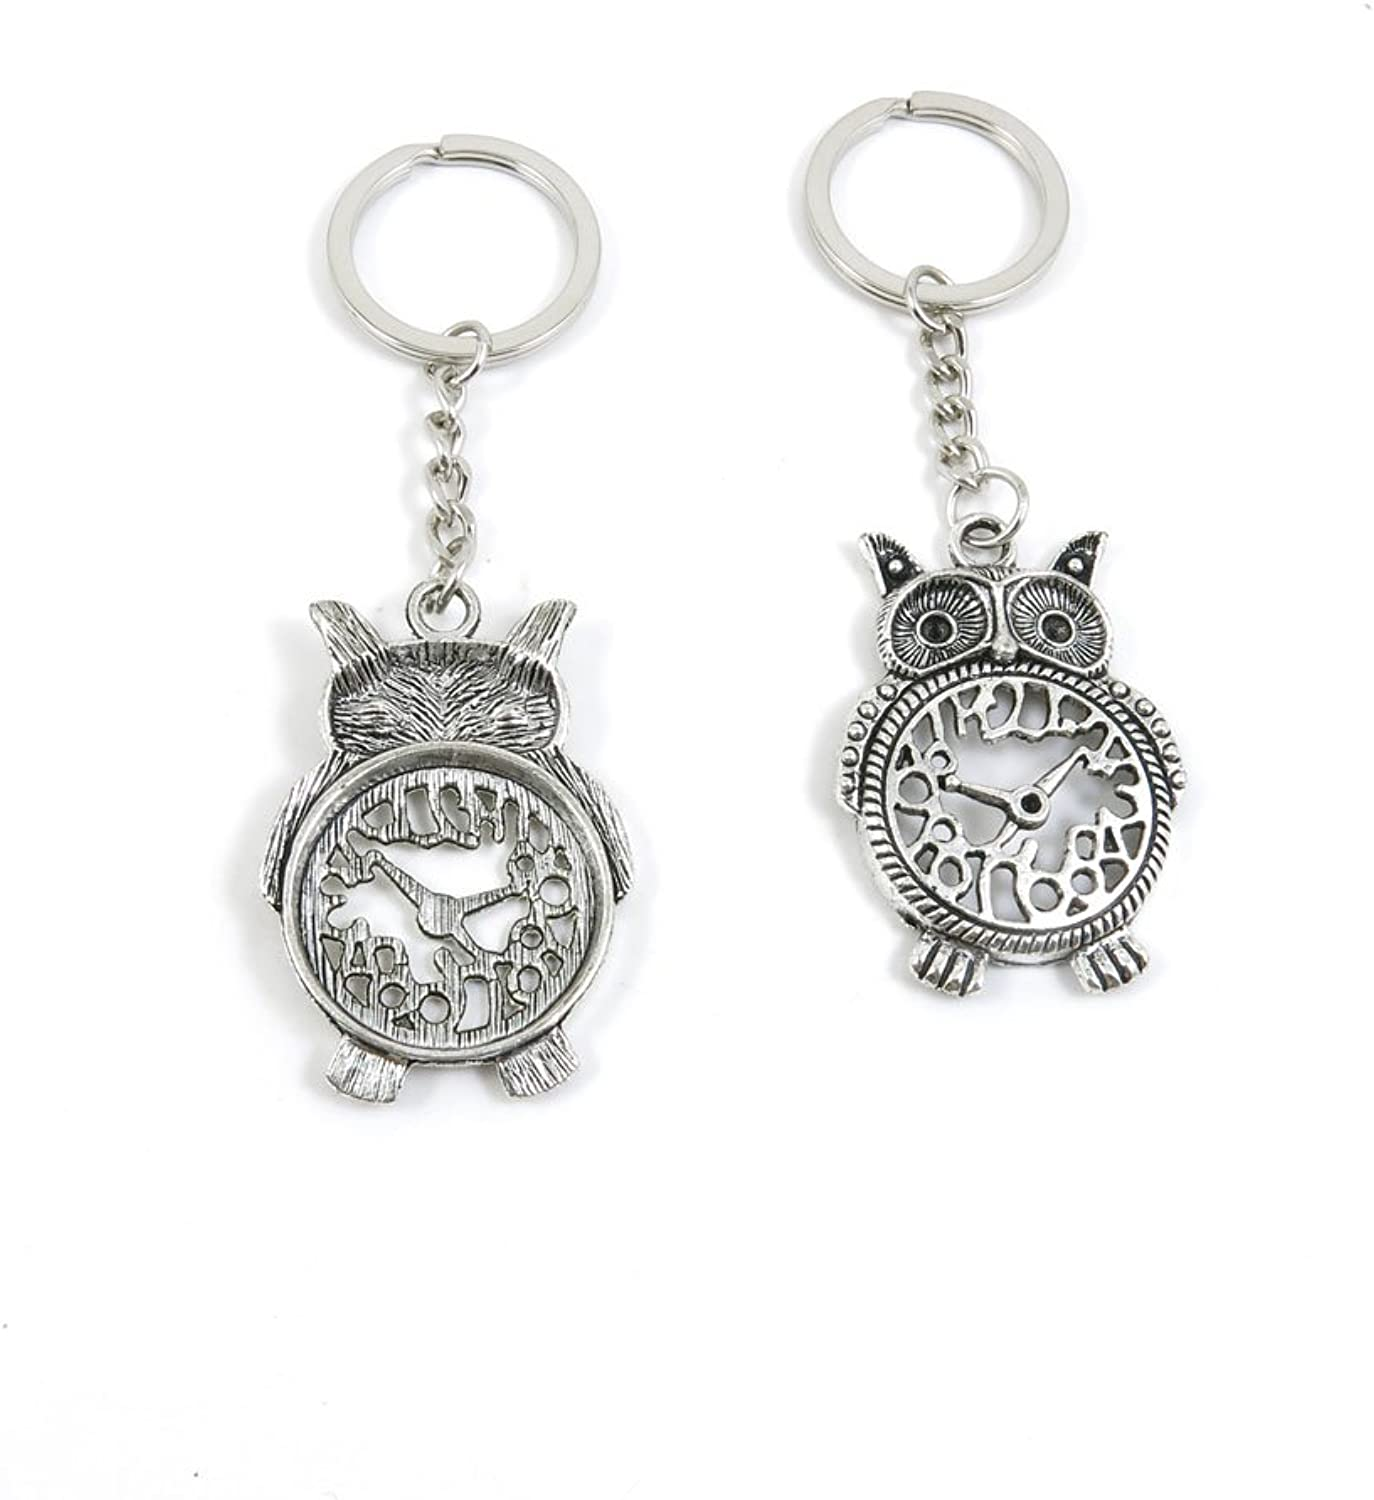 50 Pieces Keychain Keyring Door Car Key Chain Ring Tag Charms Bulk Supply Jewelry Making Clasp Findings U3QV3W Owl Clock Time